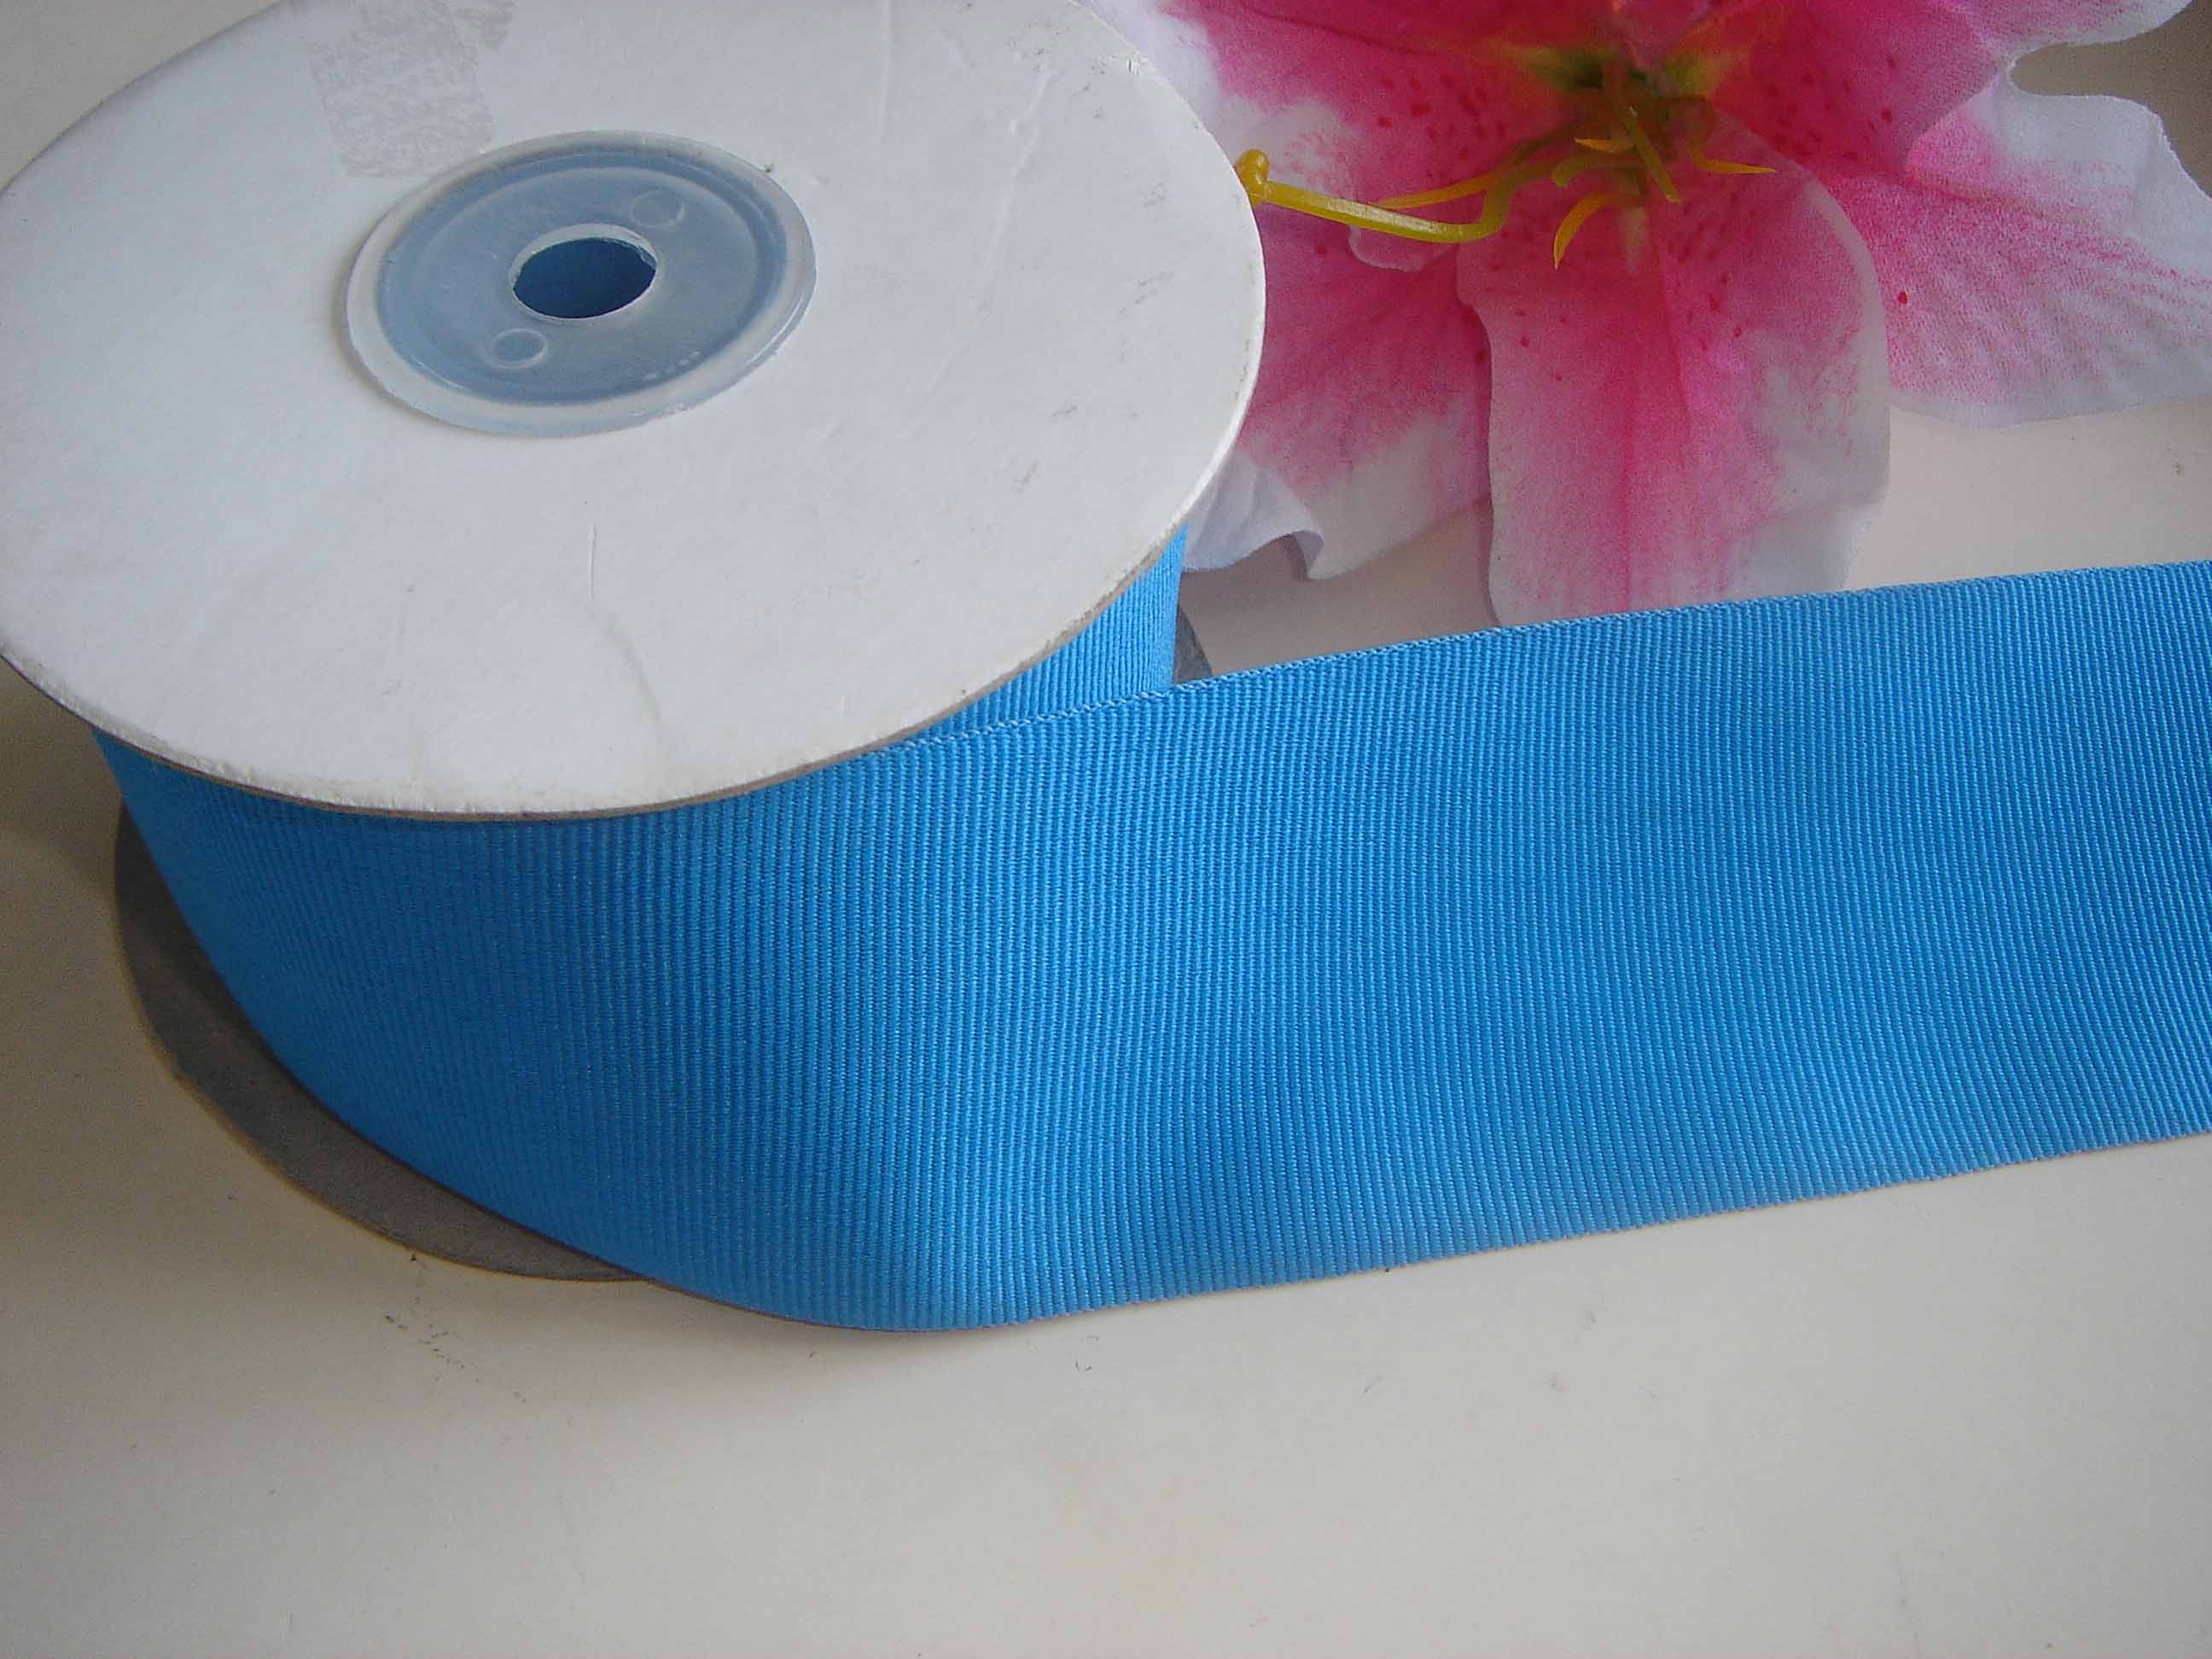 Yarn dyed grosgrain ribbon